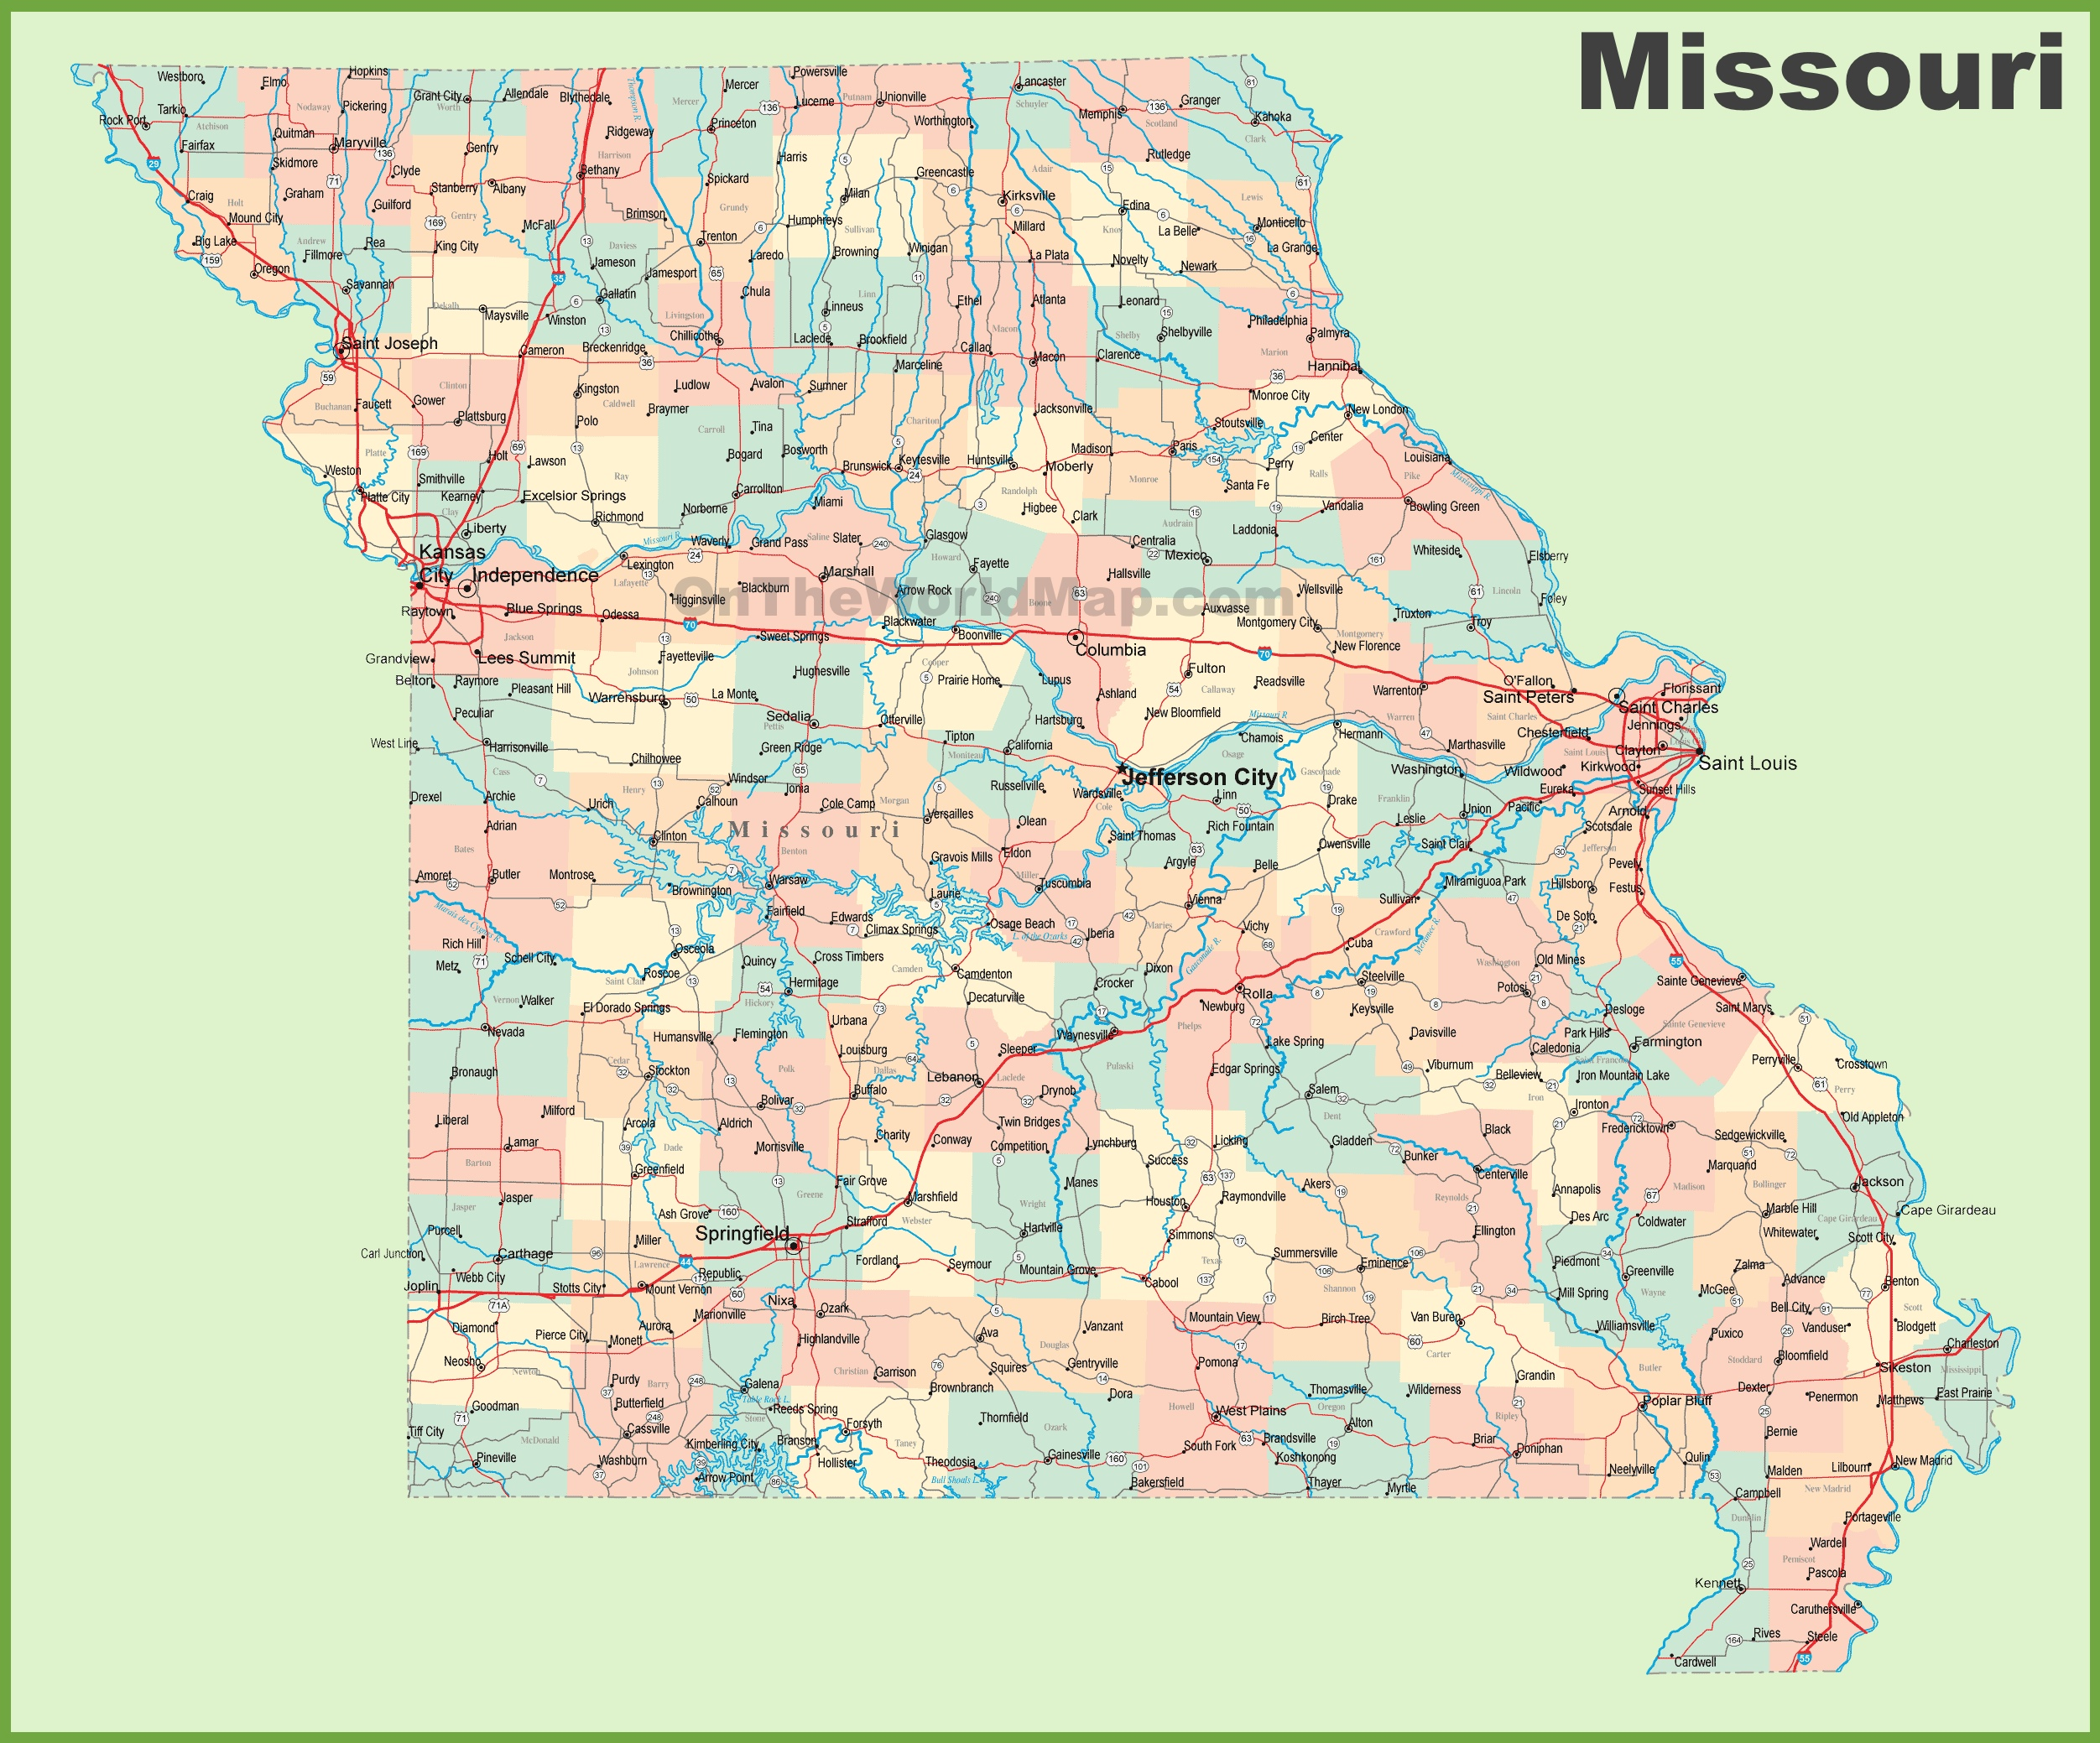 Road Map Of Missouri With Cities - Map of cities in missouri